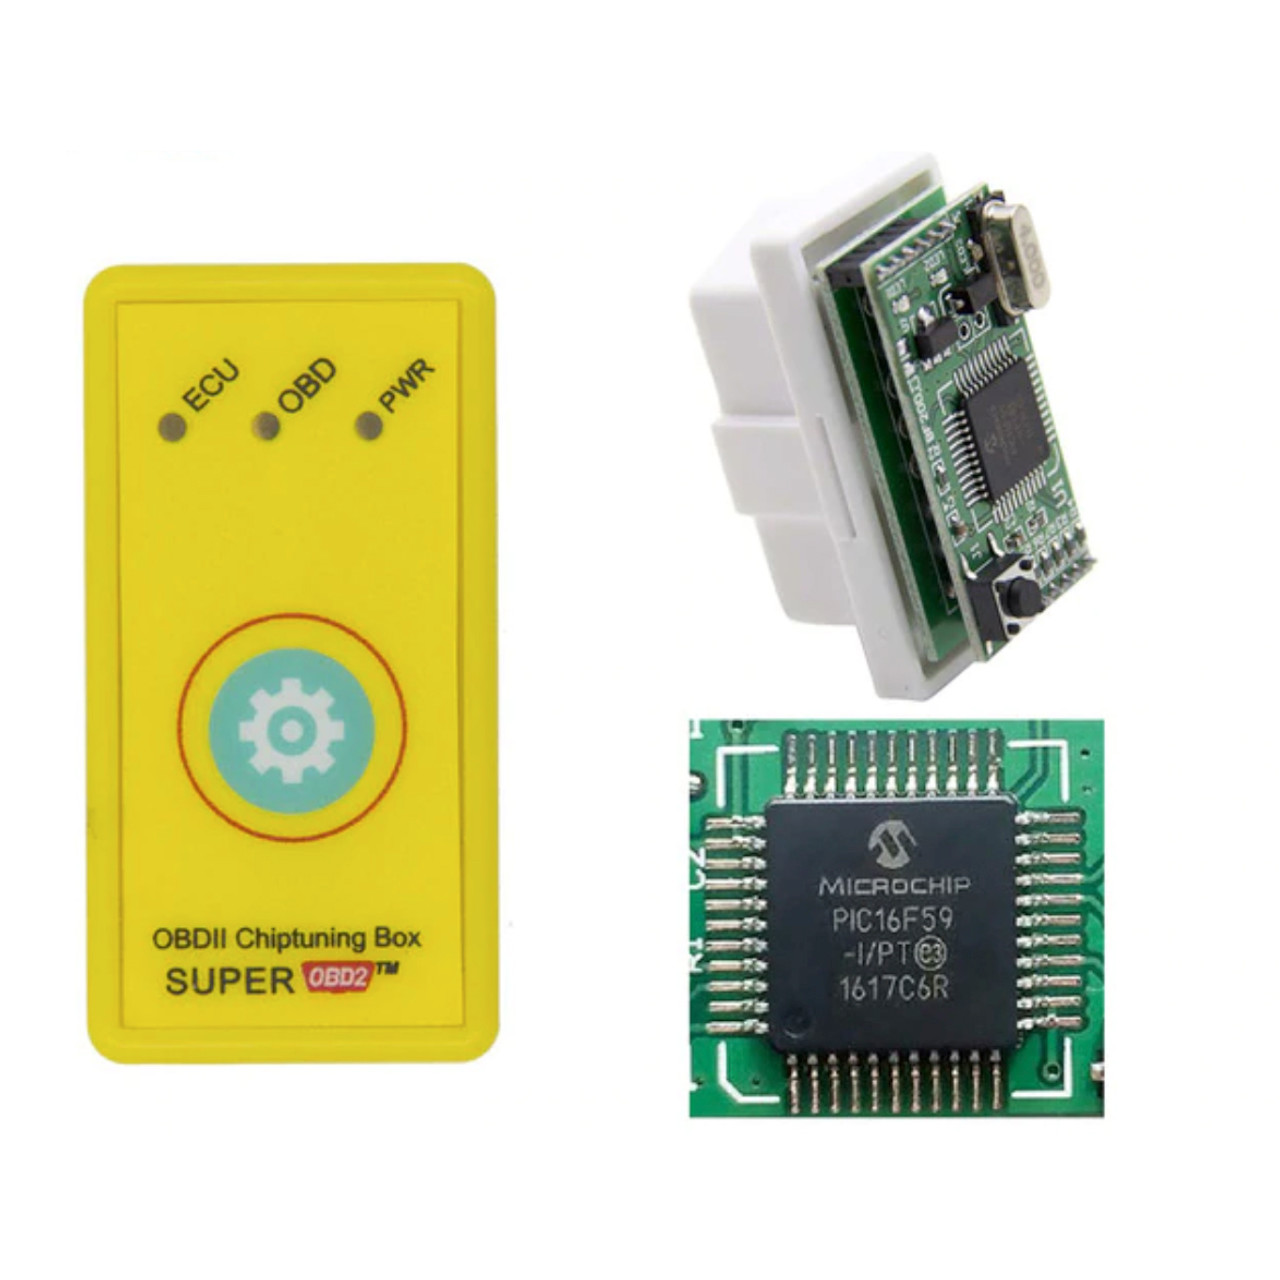 Super OBD2 Performance Chip Tuning Box for Petrol Fuel Cars